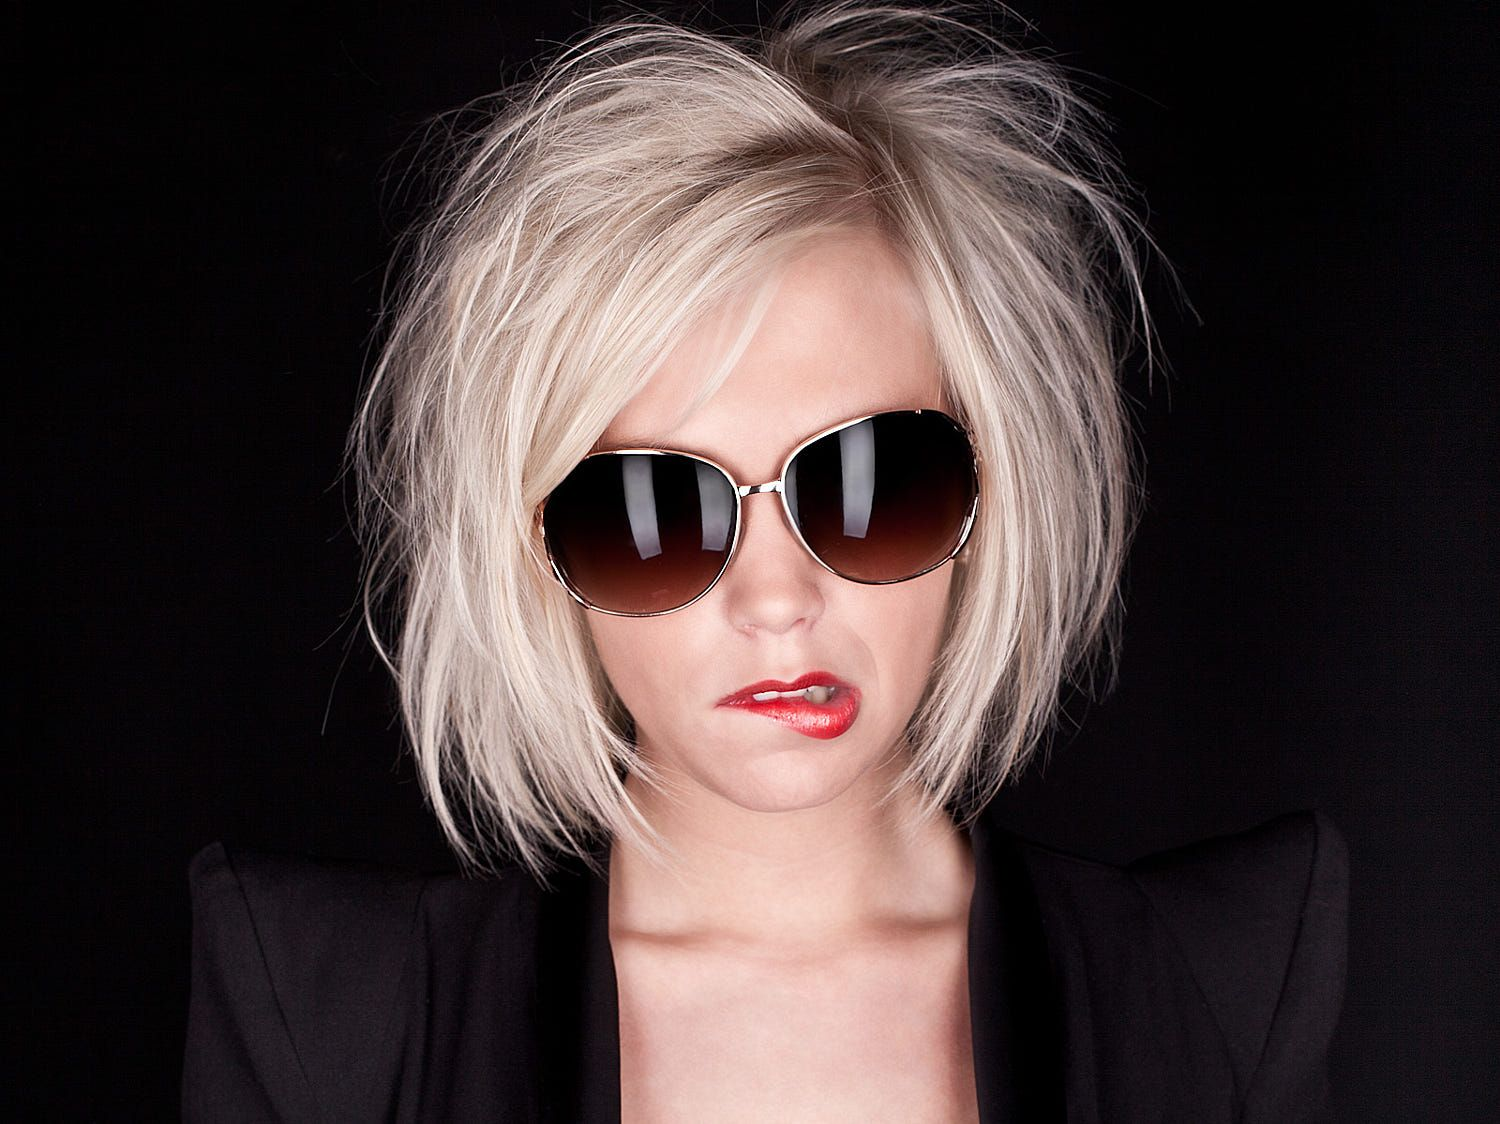 47 Best Shag Haircuts for Women over 50 That Is Easy To Try in 2021 2d47fa0340763a50a14fa0cf43b7a53c